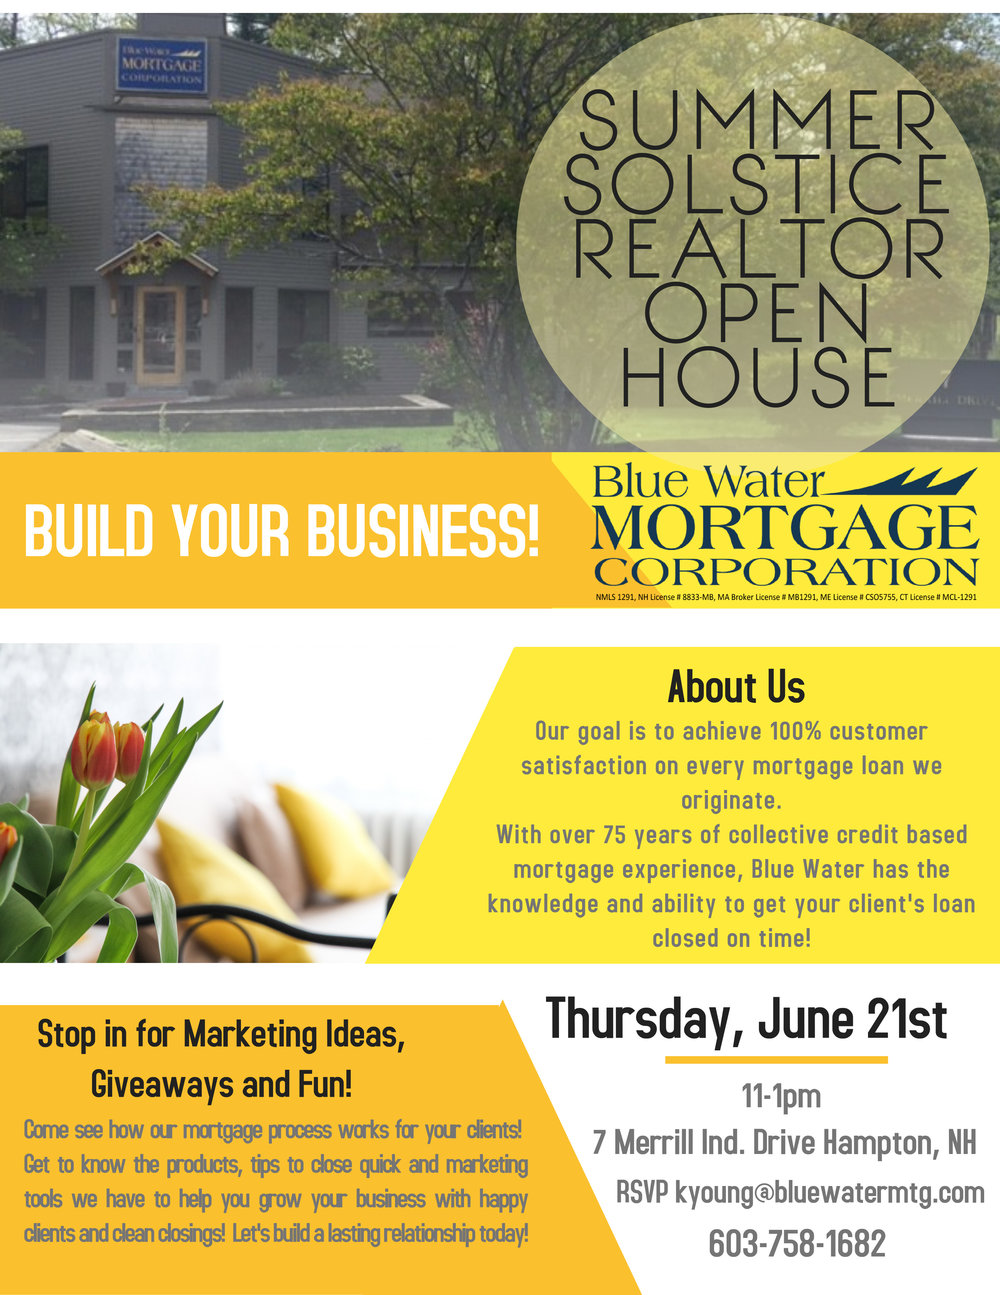 Copy of Copy of Copy of Open House Real Estate Property Business Flyer and Poster.jpg